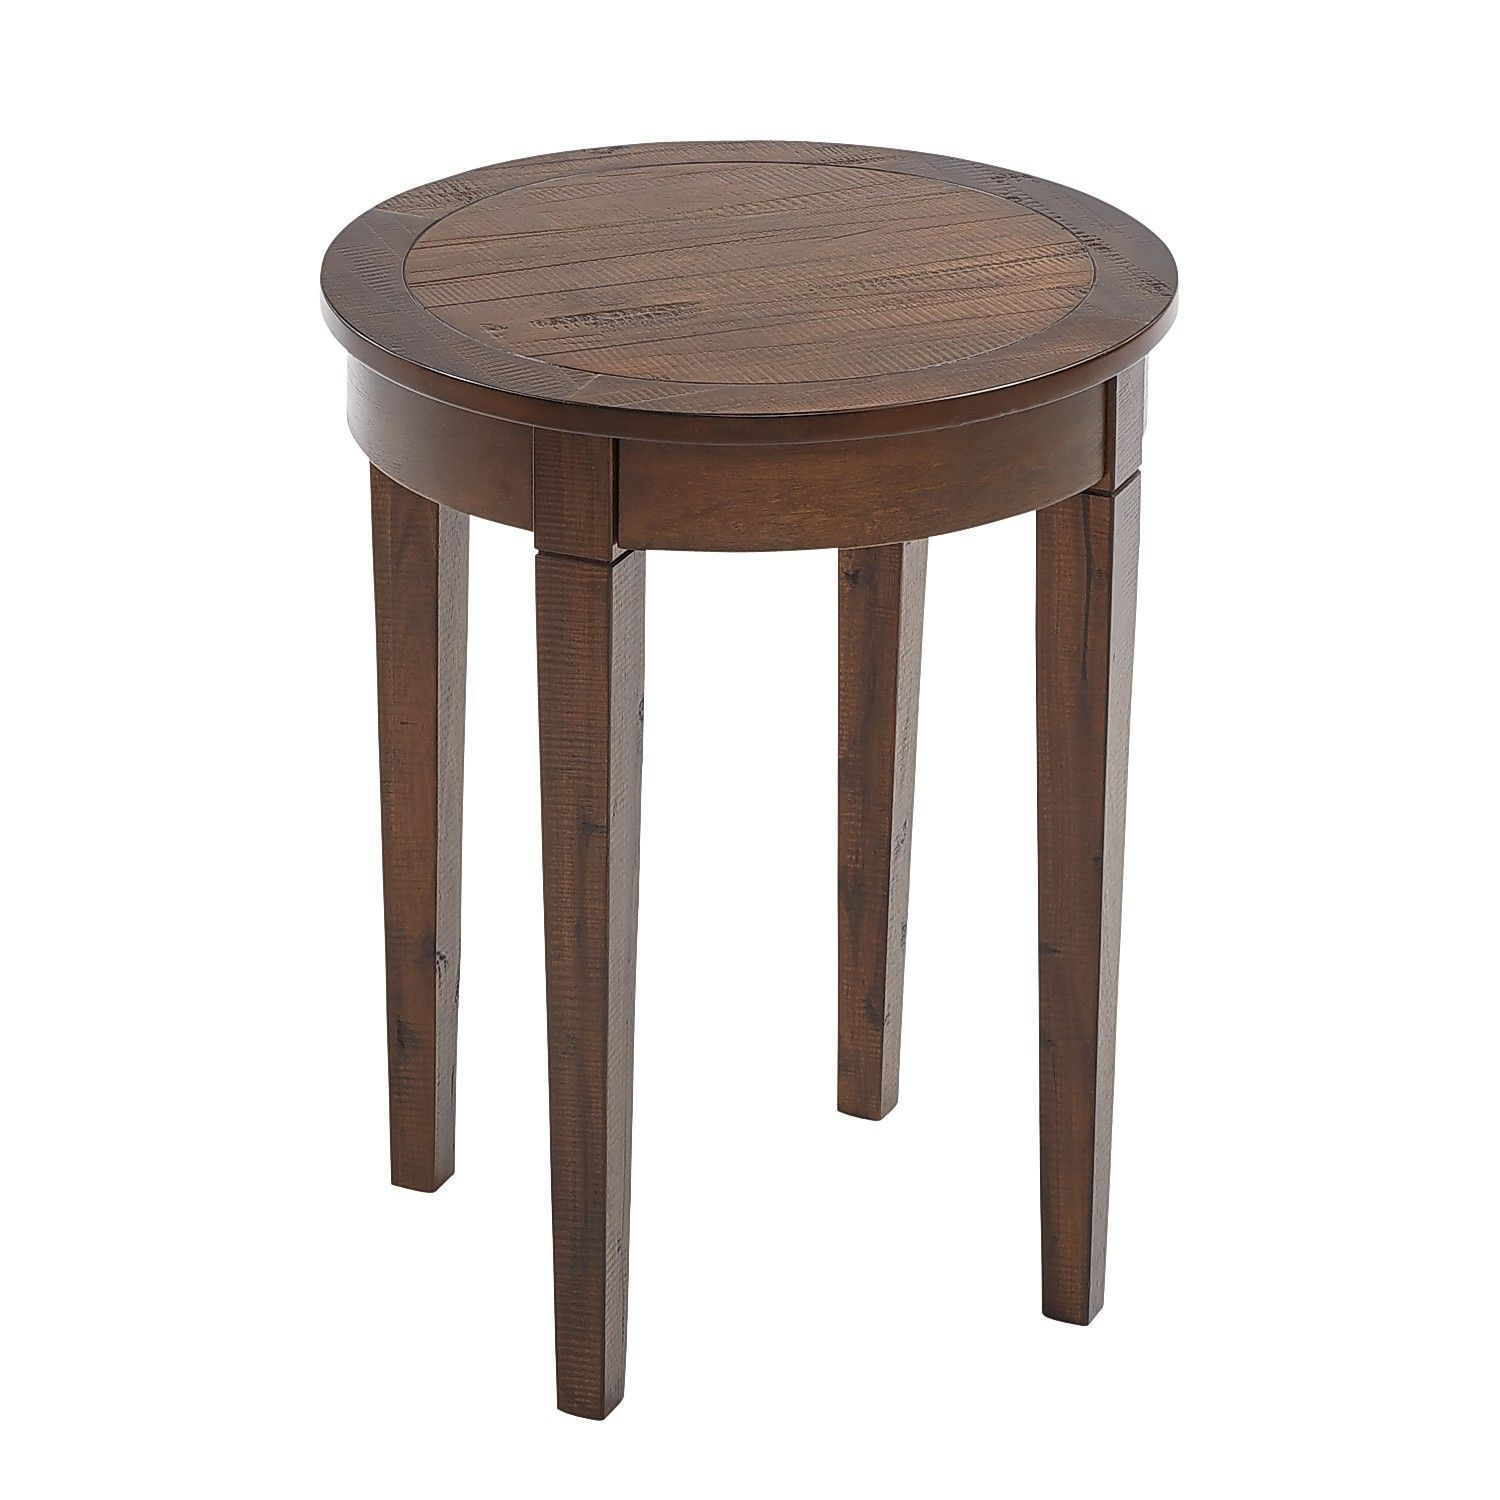 wright round accent table pier imports living room decor tables small dresser lamps home ornaments chests and consoles threshold teal fruit cocktail recipe one floor glass lamp